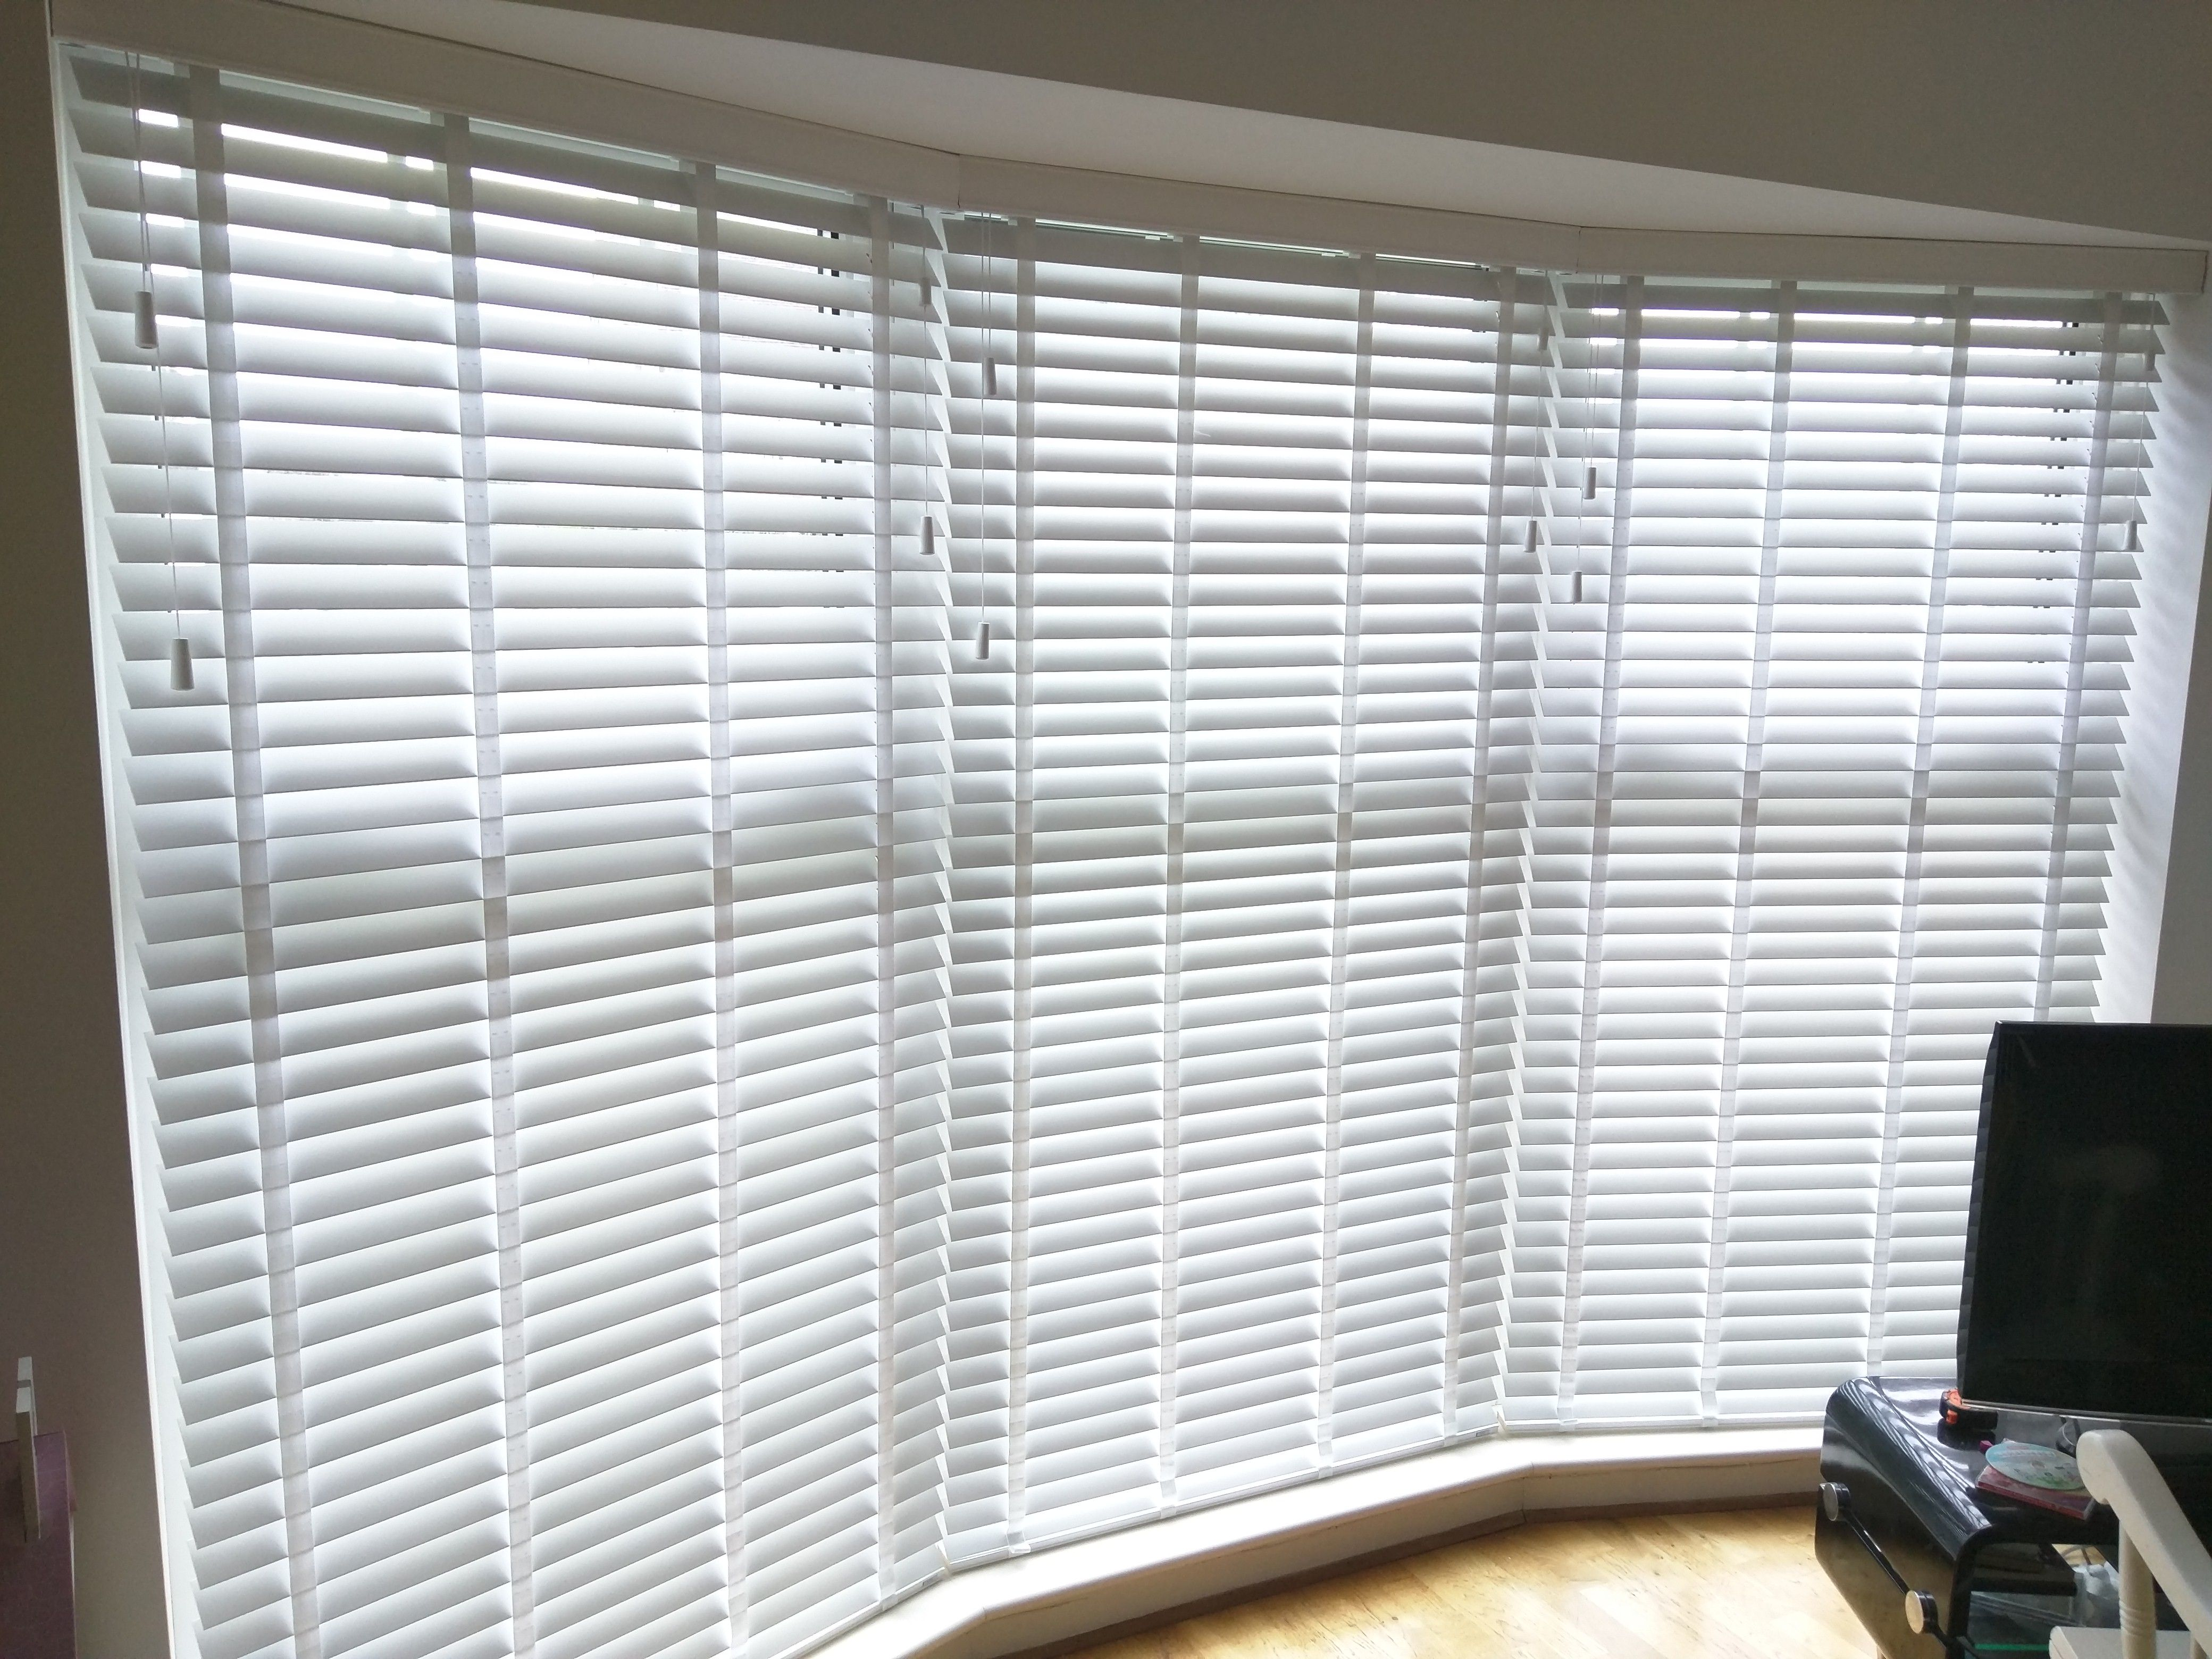 Wood Venetian Blinds With Tapes Bay Window Shoreham Living Room Blinds Made To Measure Living Room Blinds Blinds Curtains With Blinds